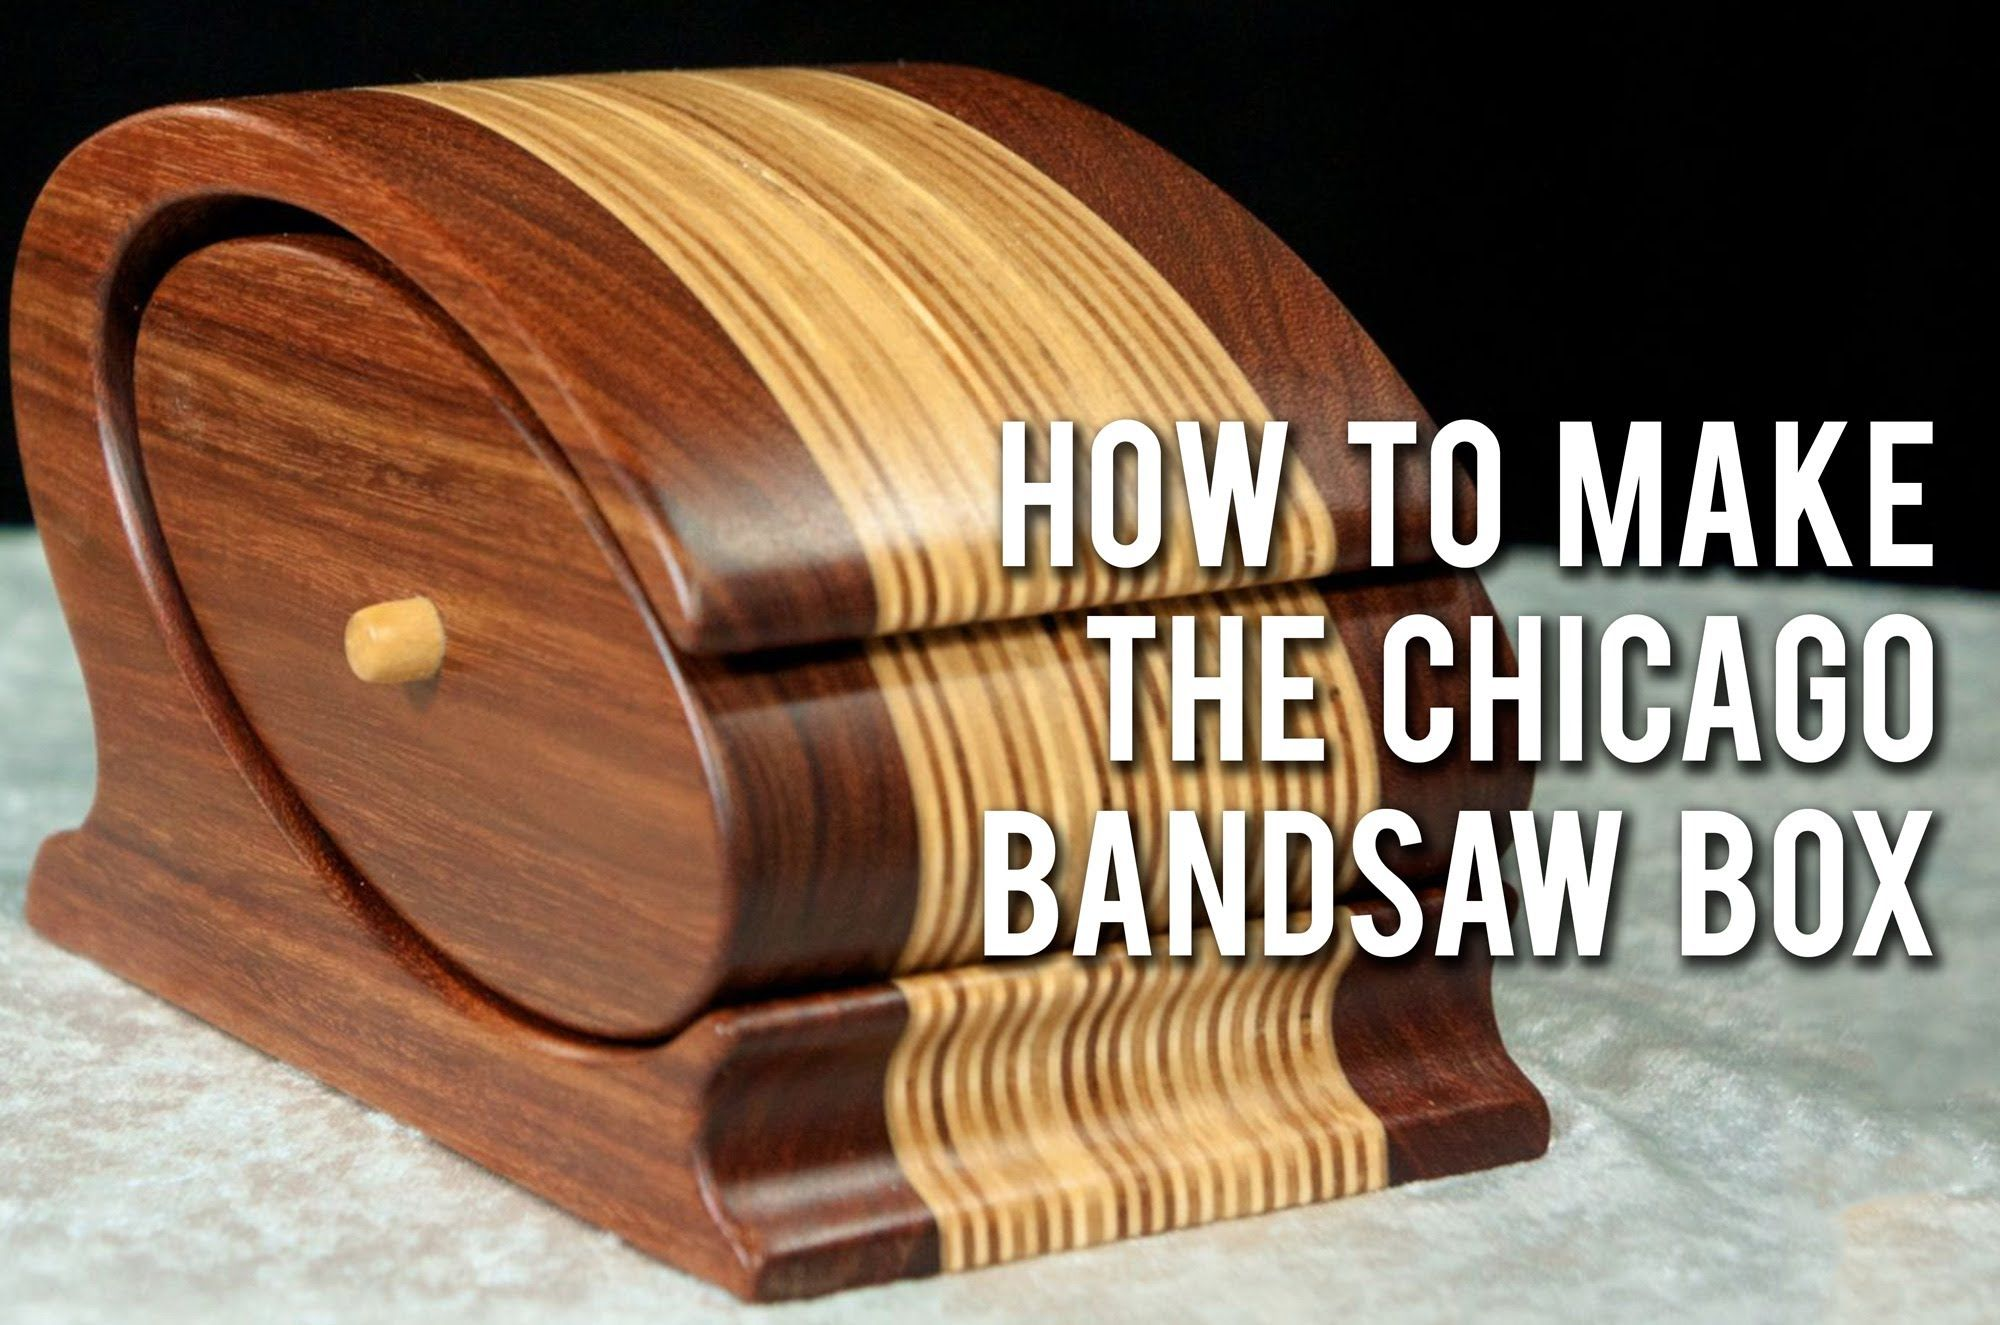 Step By Step Video On How To Make The Chicago Bandsaw Box